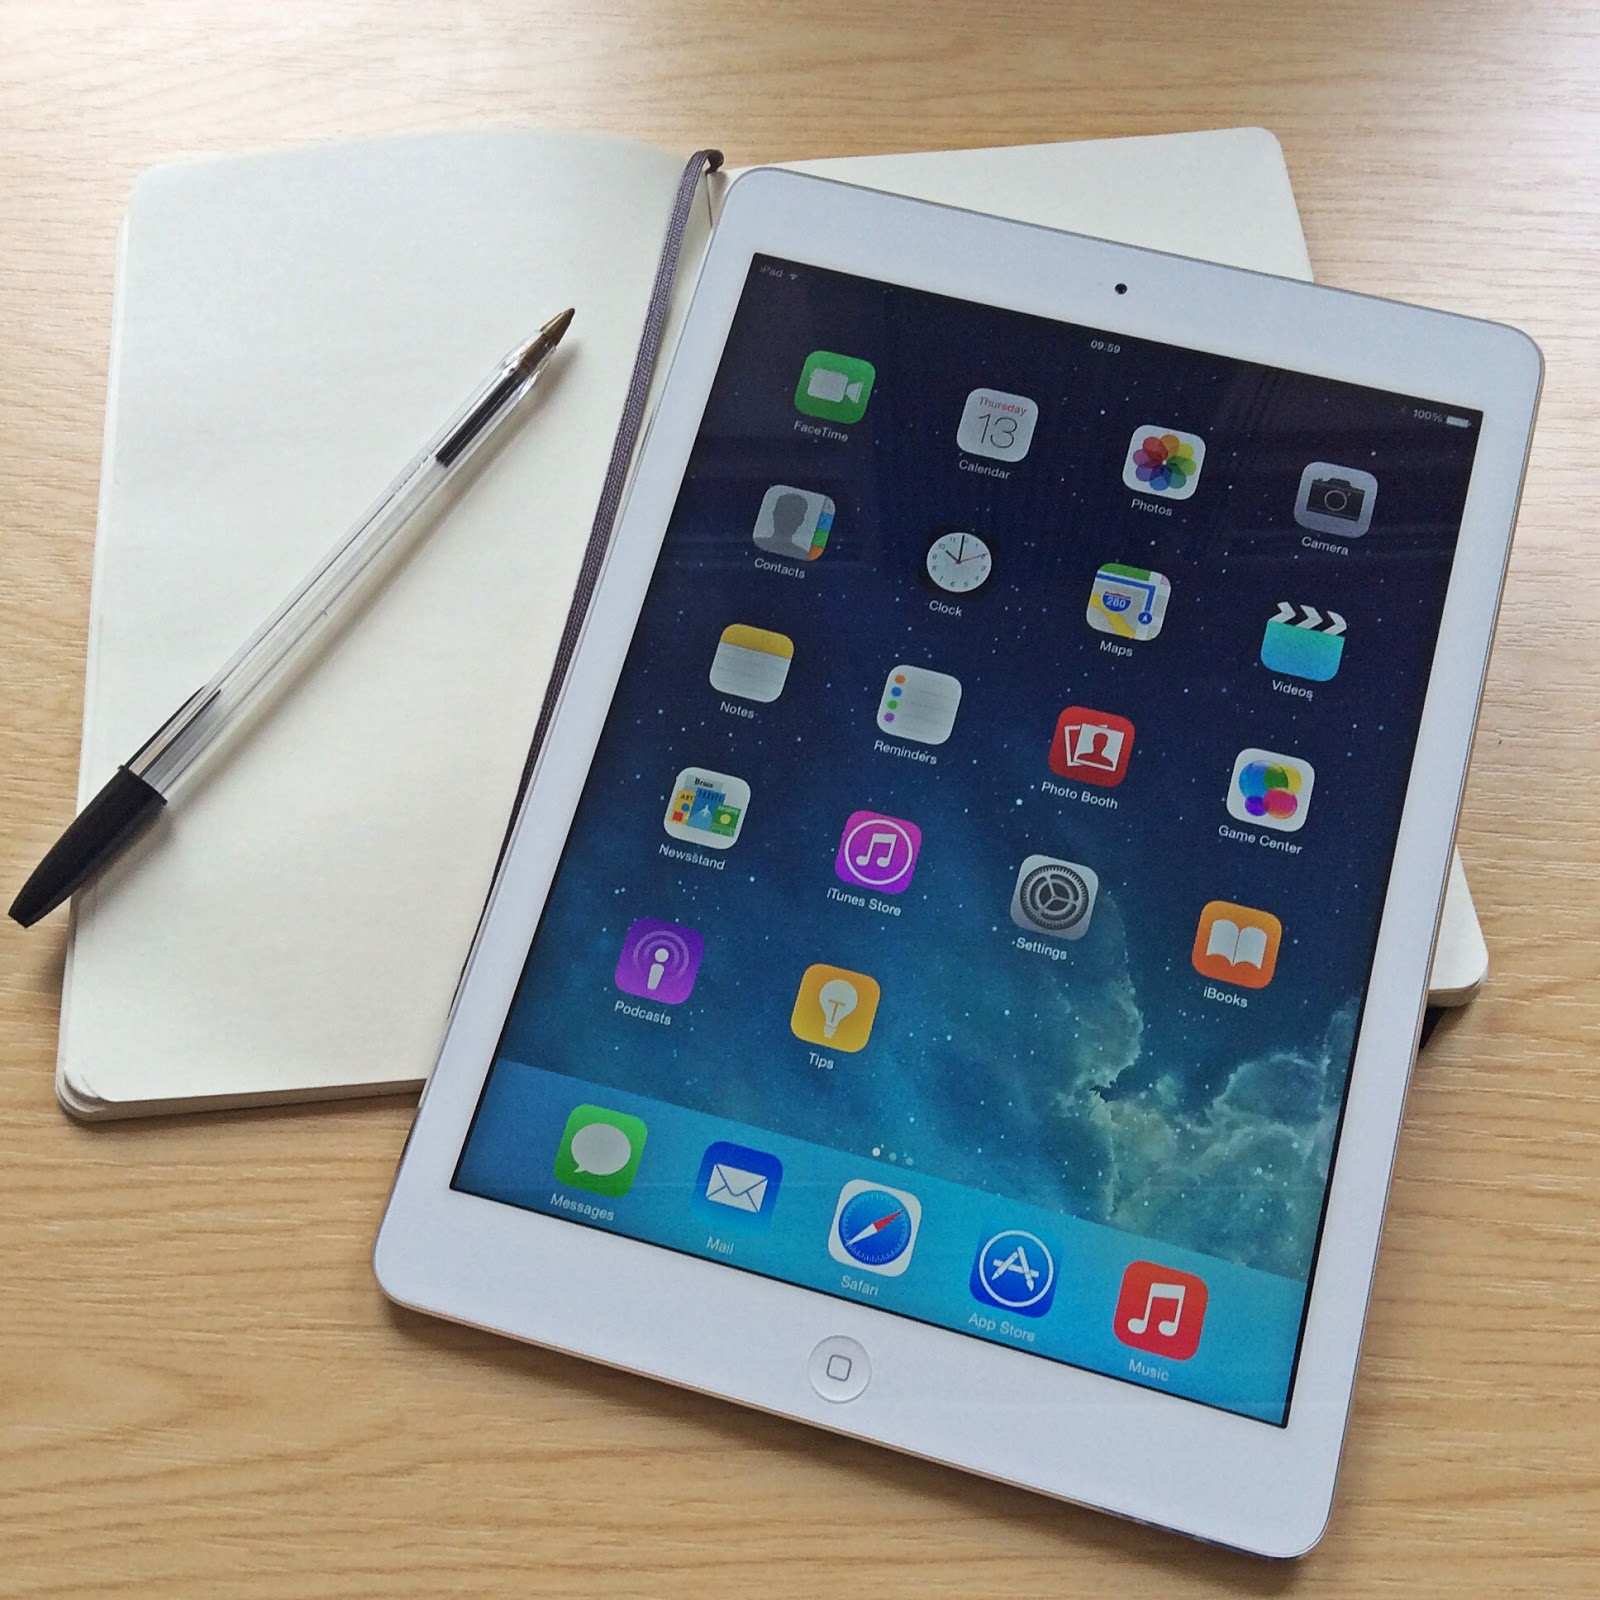 Getting Started With Your Ipad